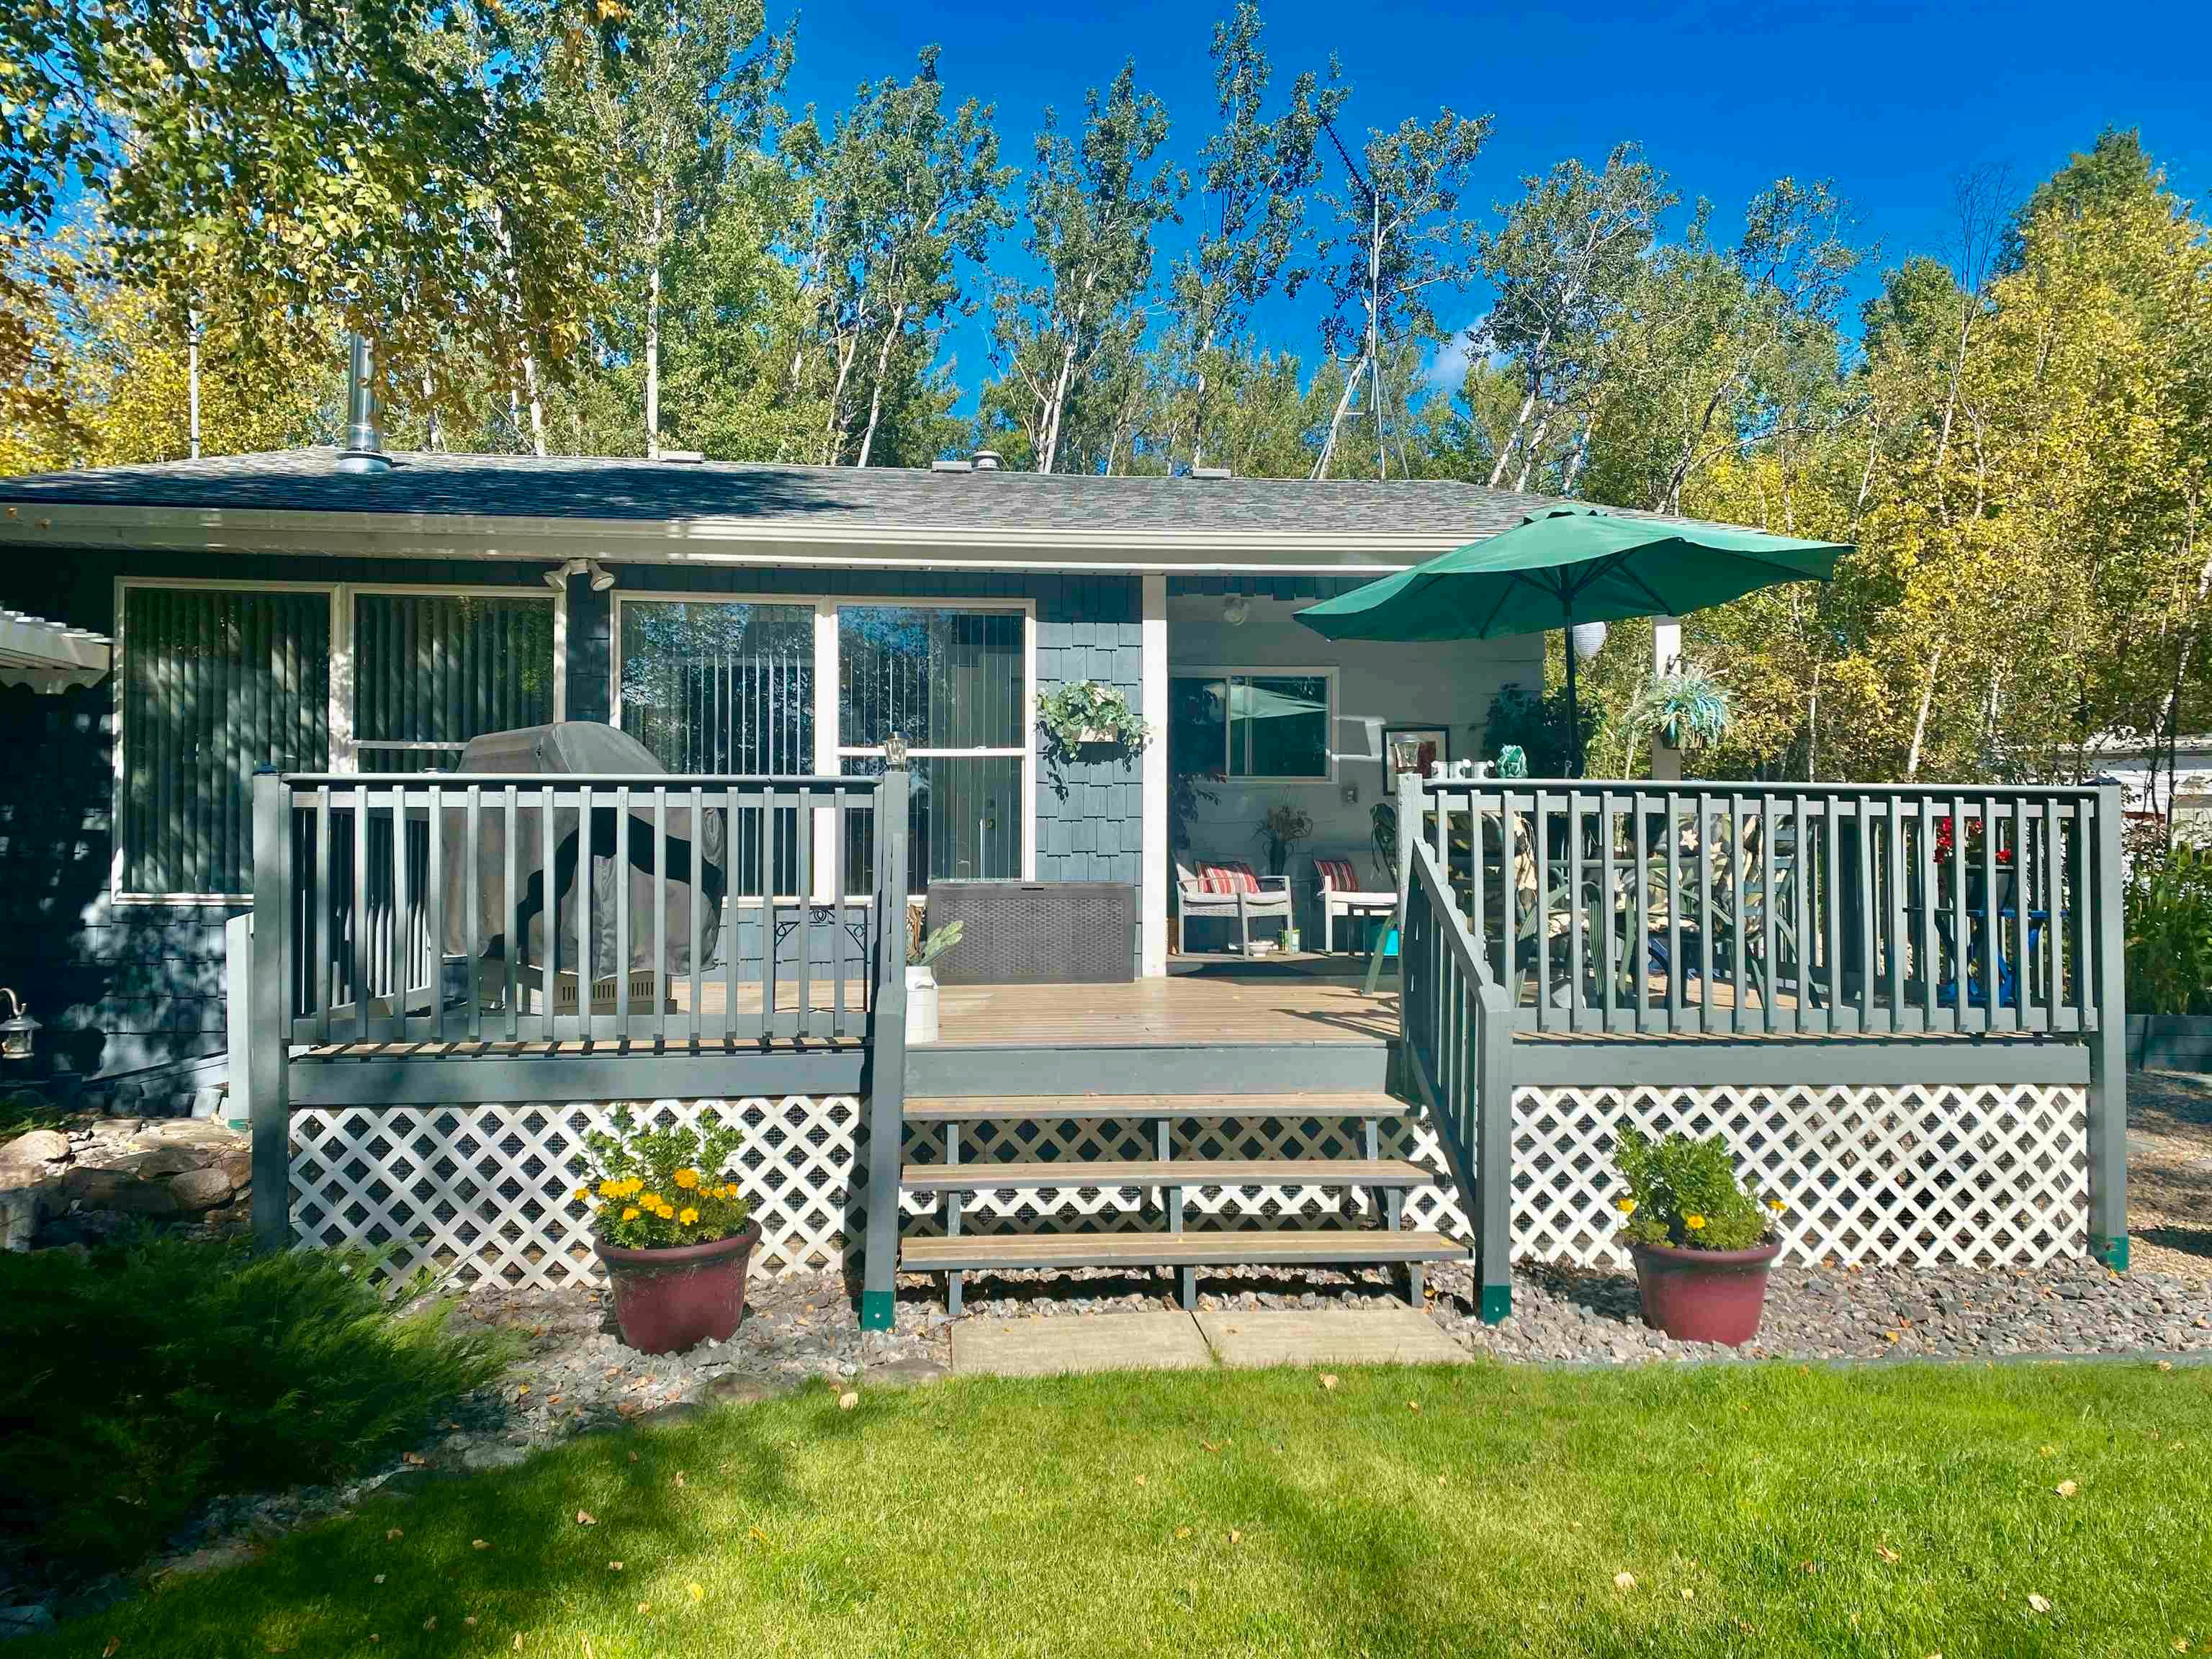 Main Photo: 526, 60017 RGE RD 110A: Rural St. Paul County House for sale : MLS®# E4262418